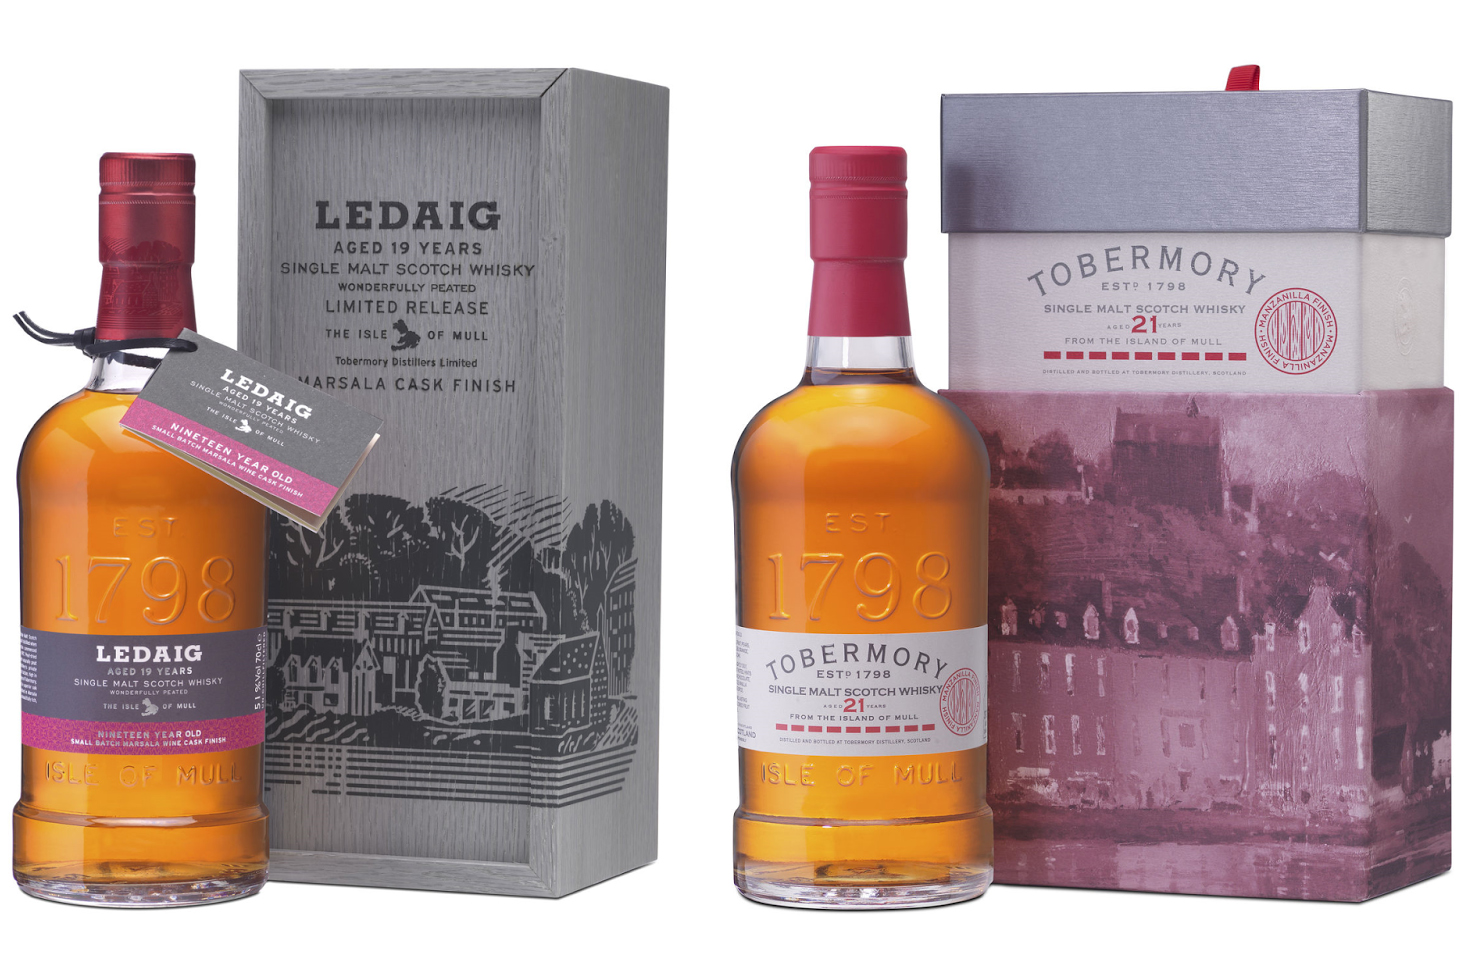 Ledaig 19 Year Old - Tobermory 21 Year Old